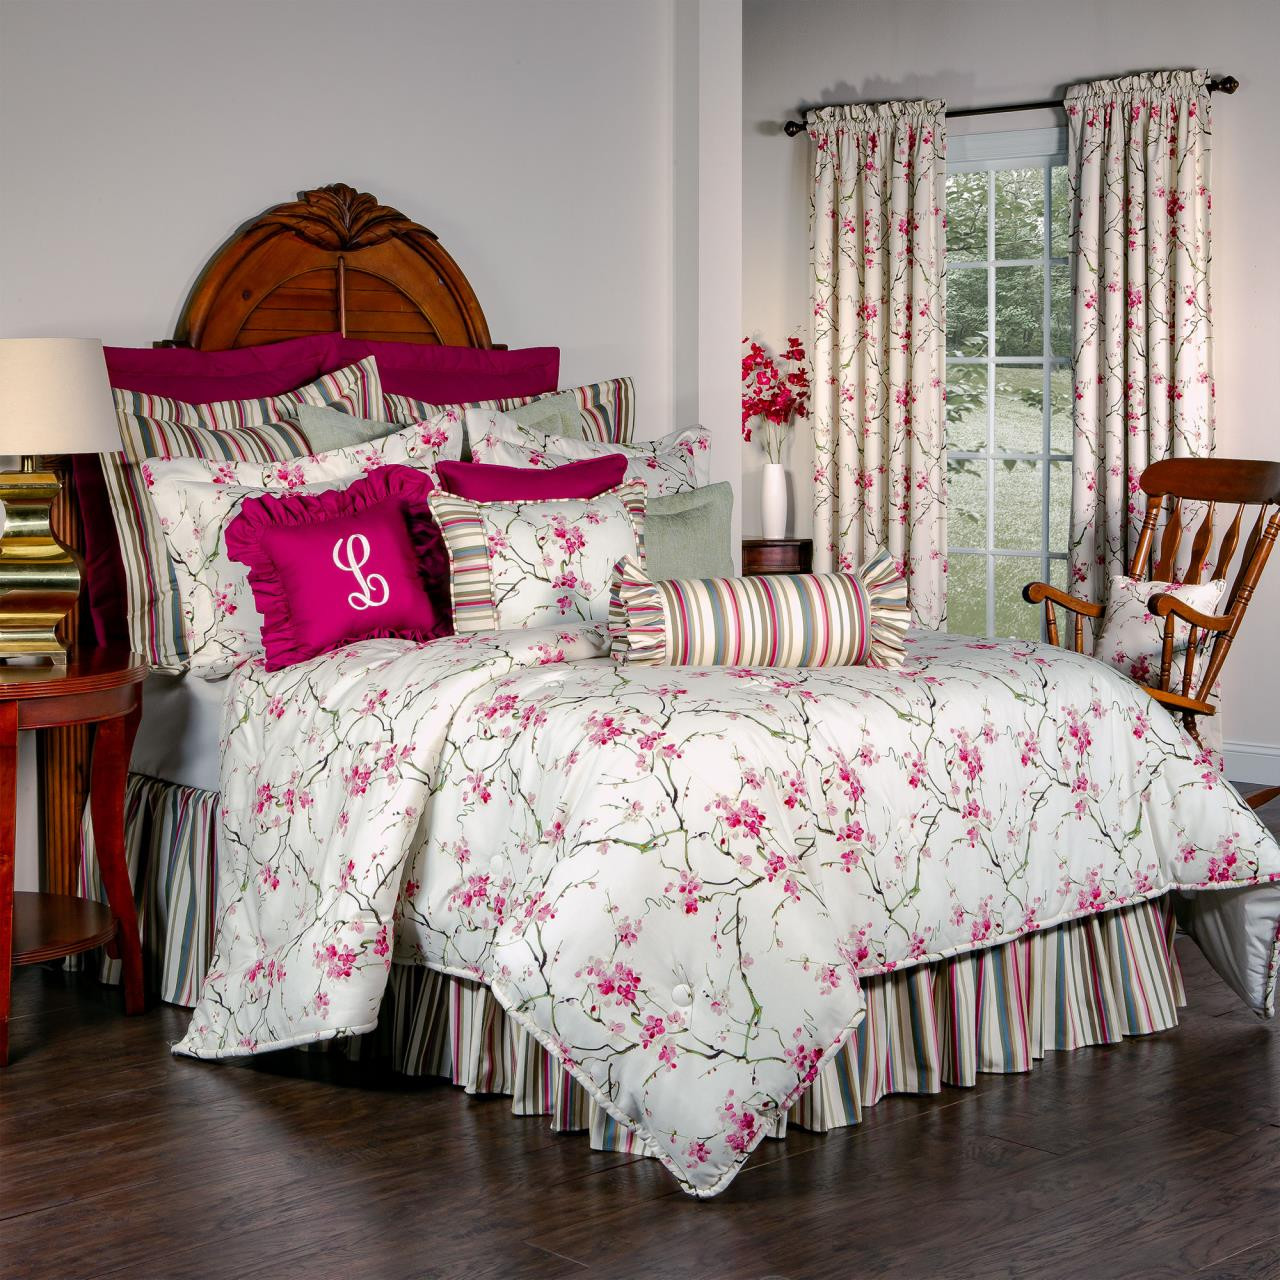 Cherry Blossom Bedding Collection -